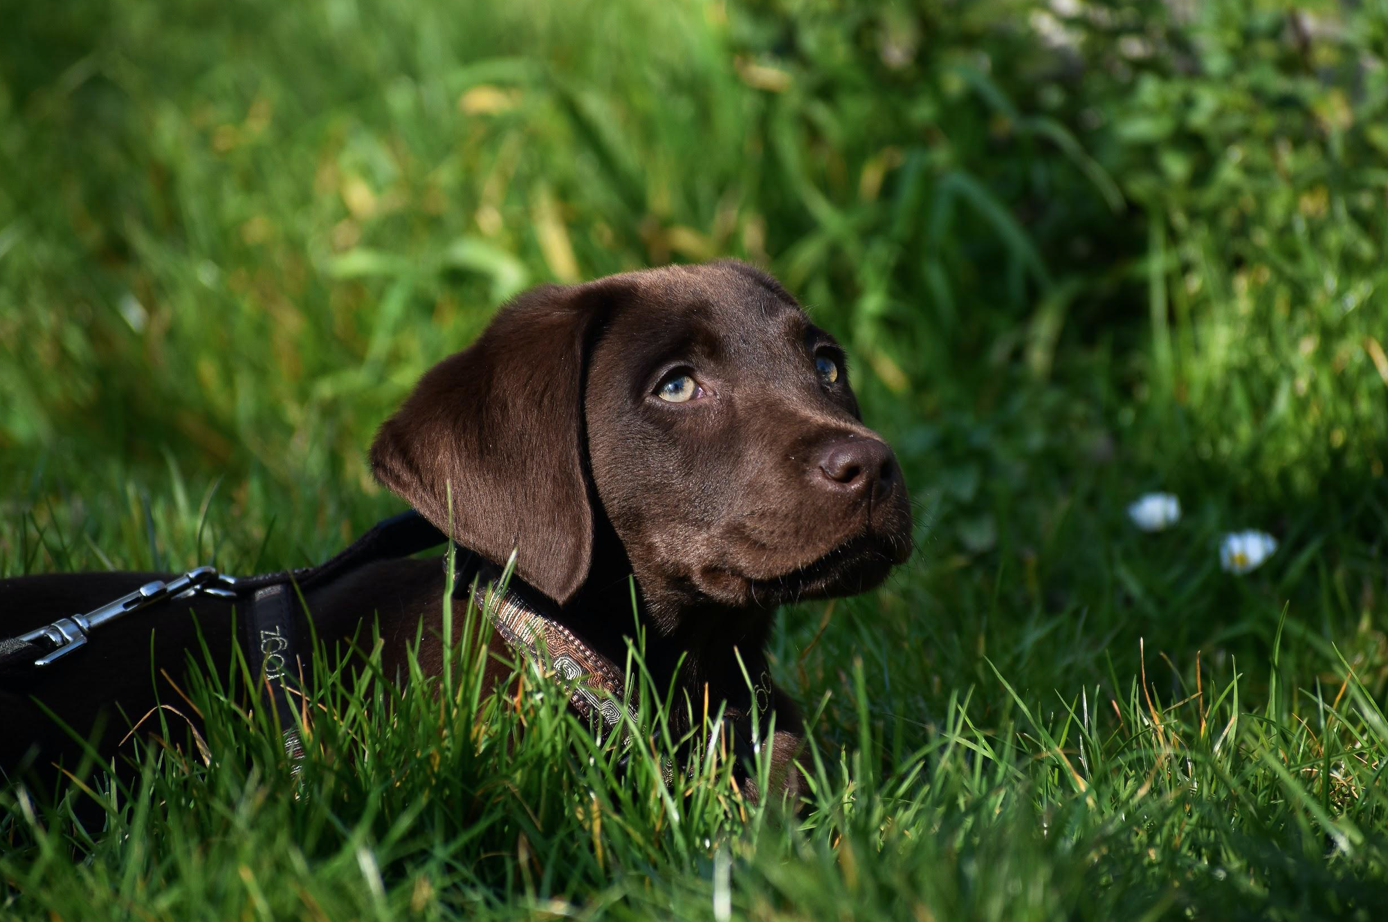 Chocolate Labrador; image by Nick & Djalila, via Unsplash.com.